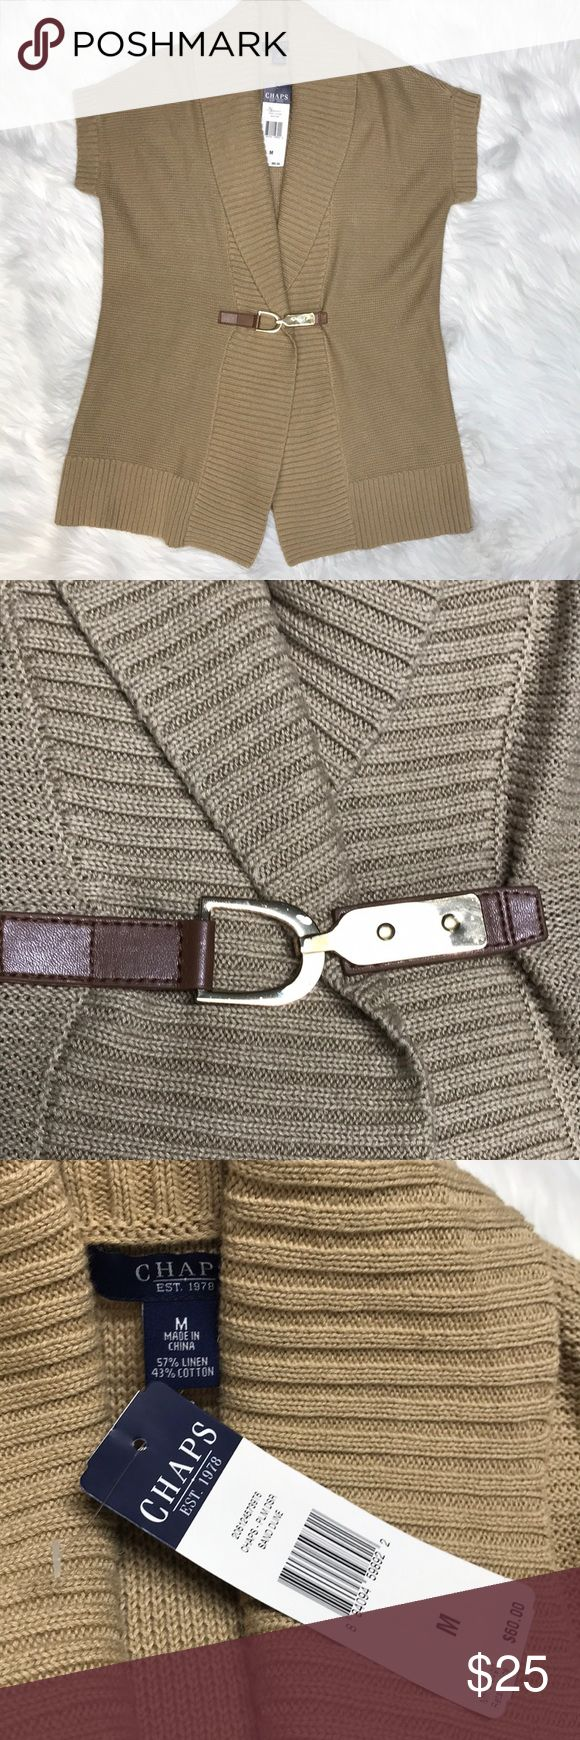 NWT Chaps linen/cotten vest metal buckle Sz Med MOre info to come No trades, offers welcome. Smoke free home & we have a small spaniel (but we don't let her wear our clothes 😂) Chaps Jackets & Coats Vests